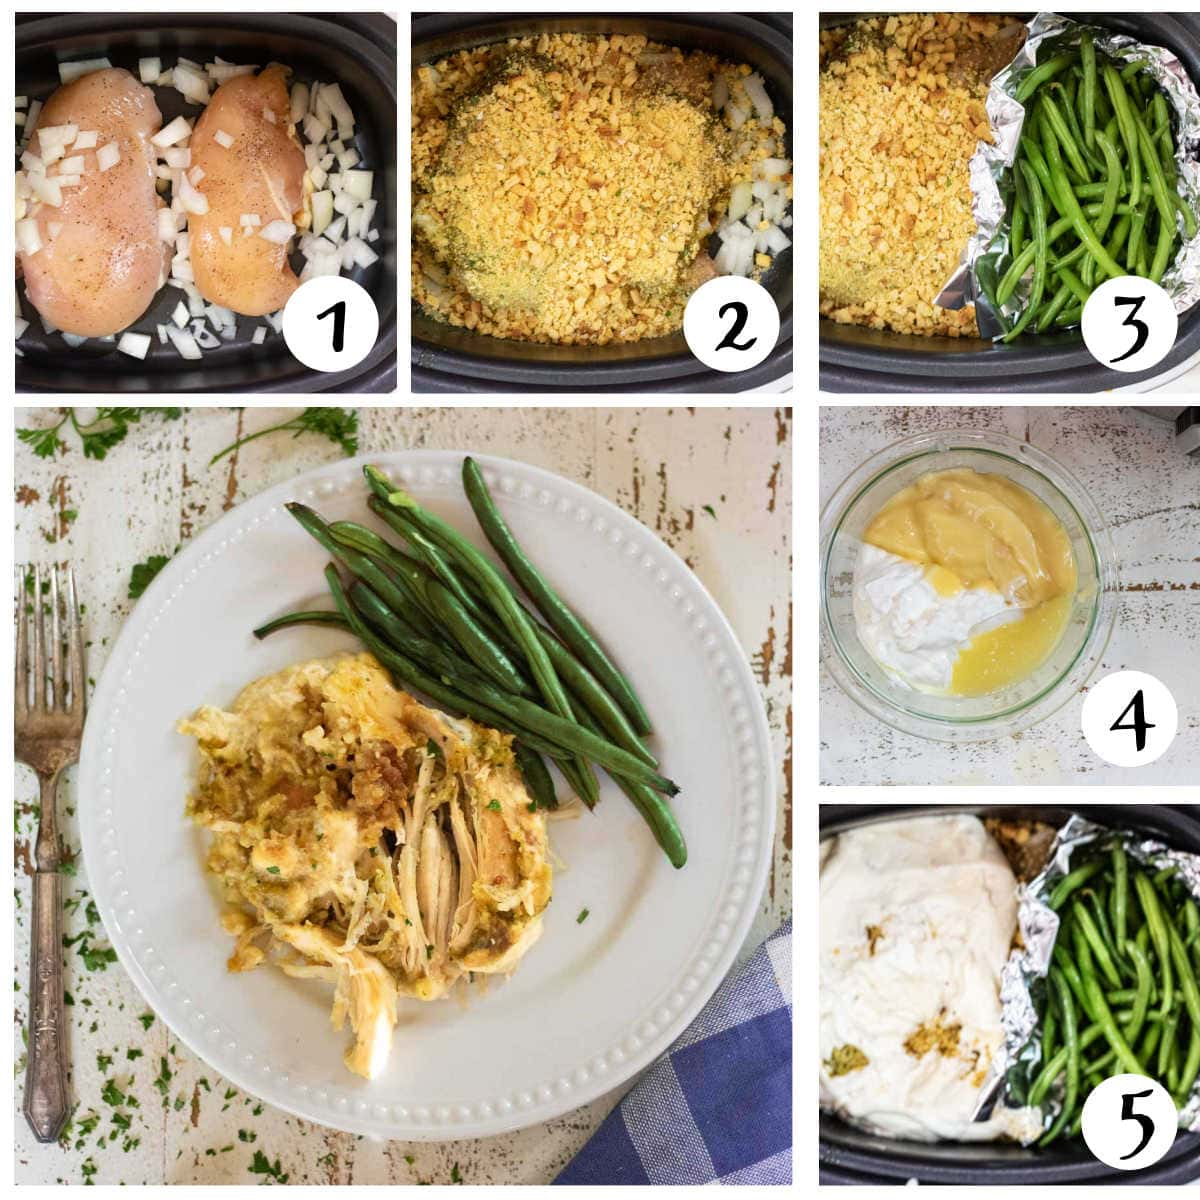 Step by step images for making slow cooker chicken and stuffing.